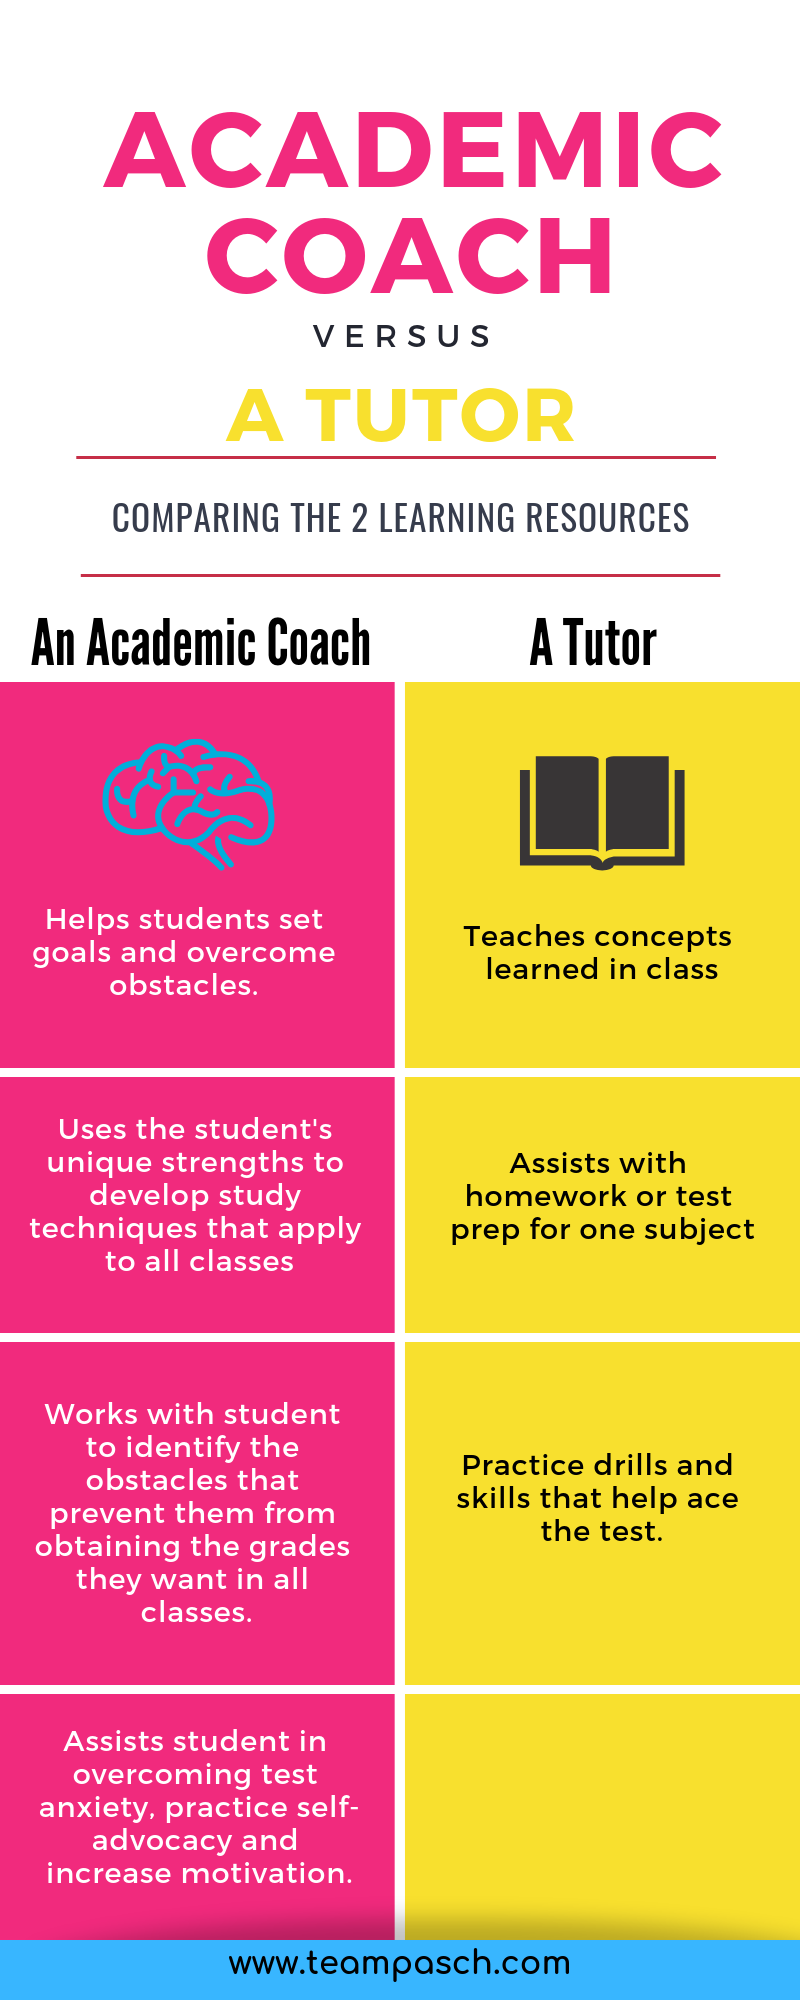 When your teenager struggles in middle school or high school, is a tutor the right choice? What is the difference between an academic coach and a tutor?  #parenting #middleschool  Marni Pasch Team Pasch Academic Coaching www.teampasch.com